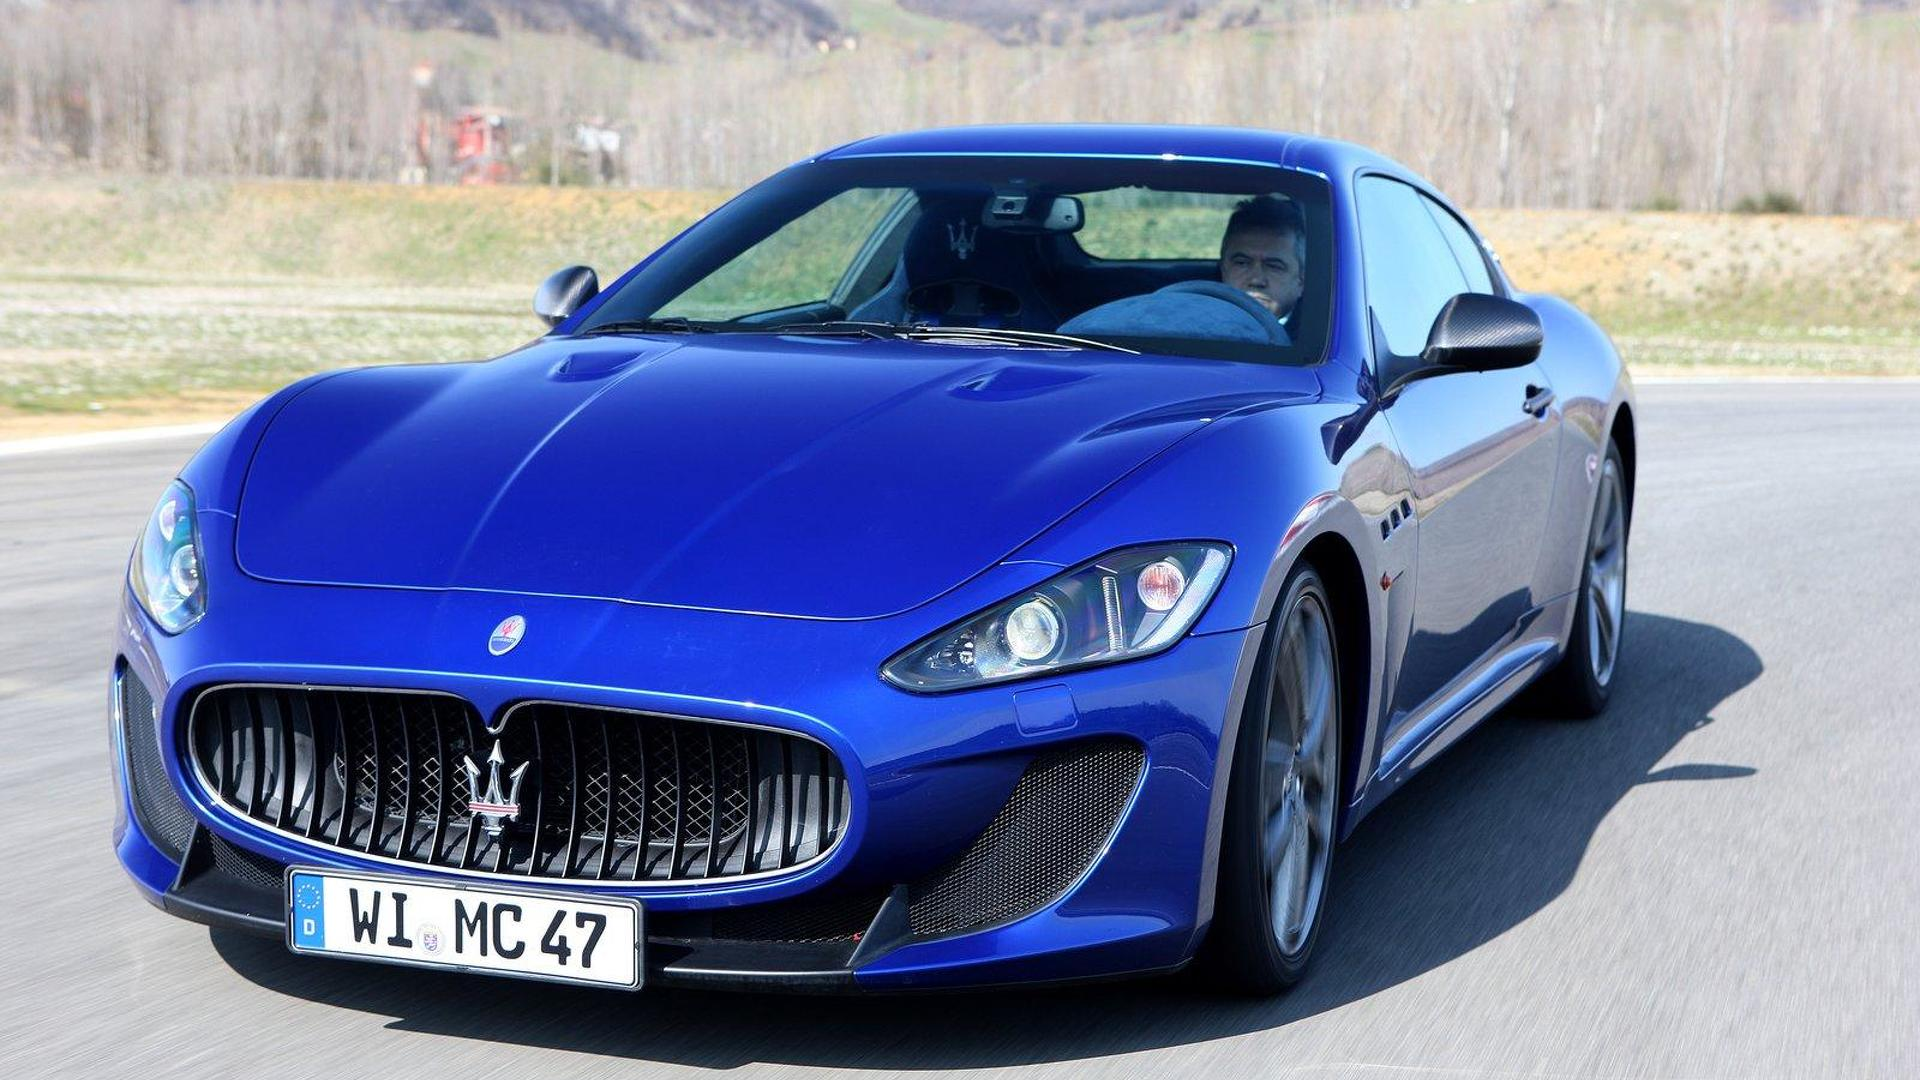 Maserati GranTurismo and Quattroporte to get Chrysler's Pentastar V6